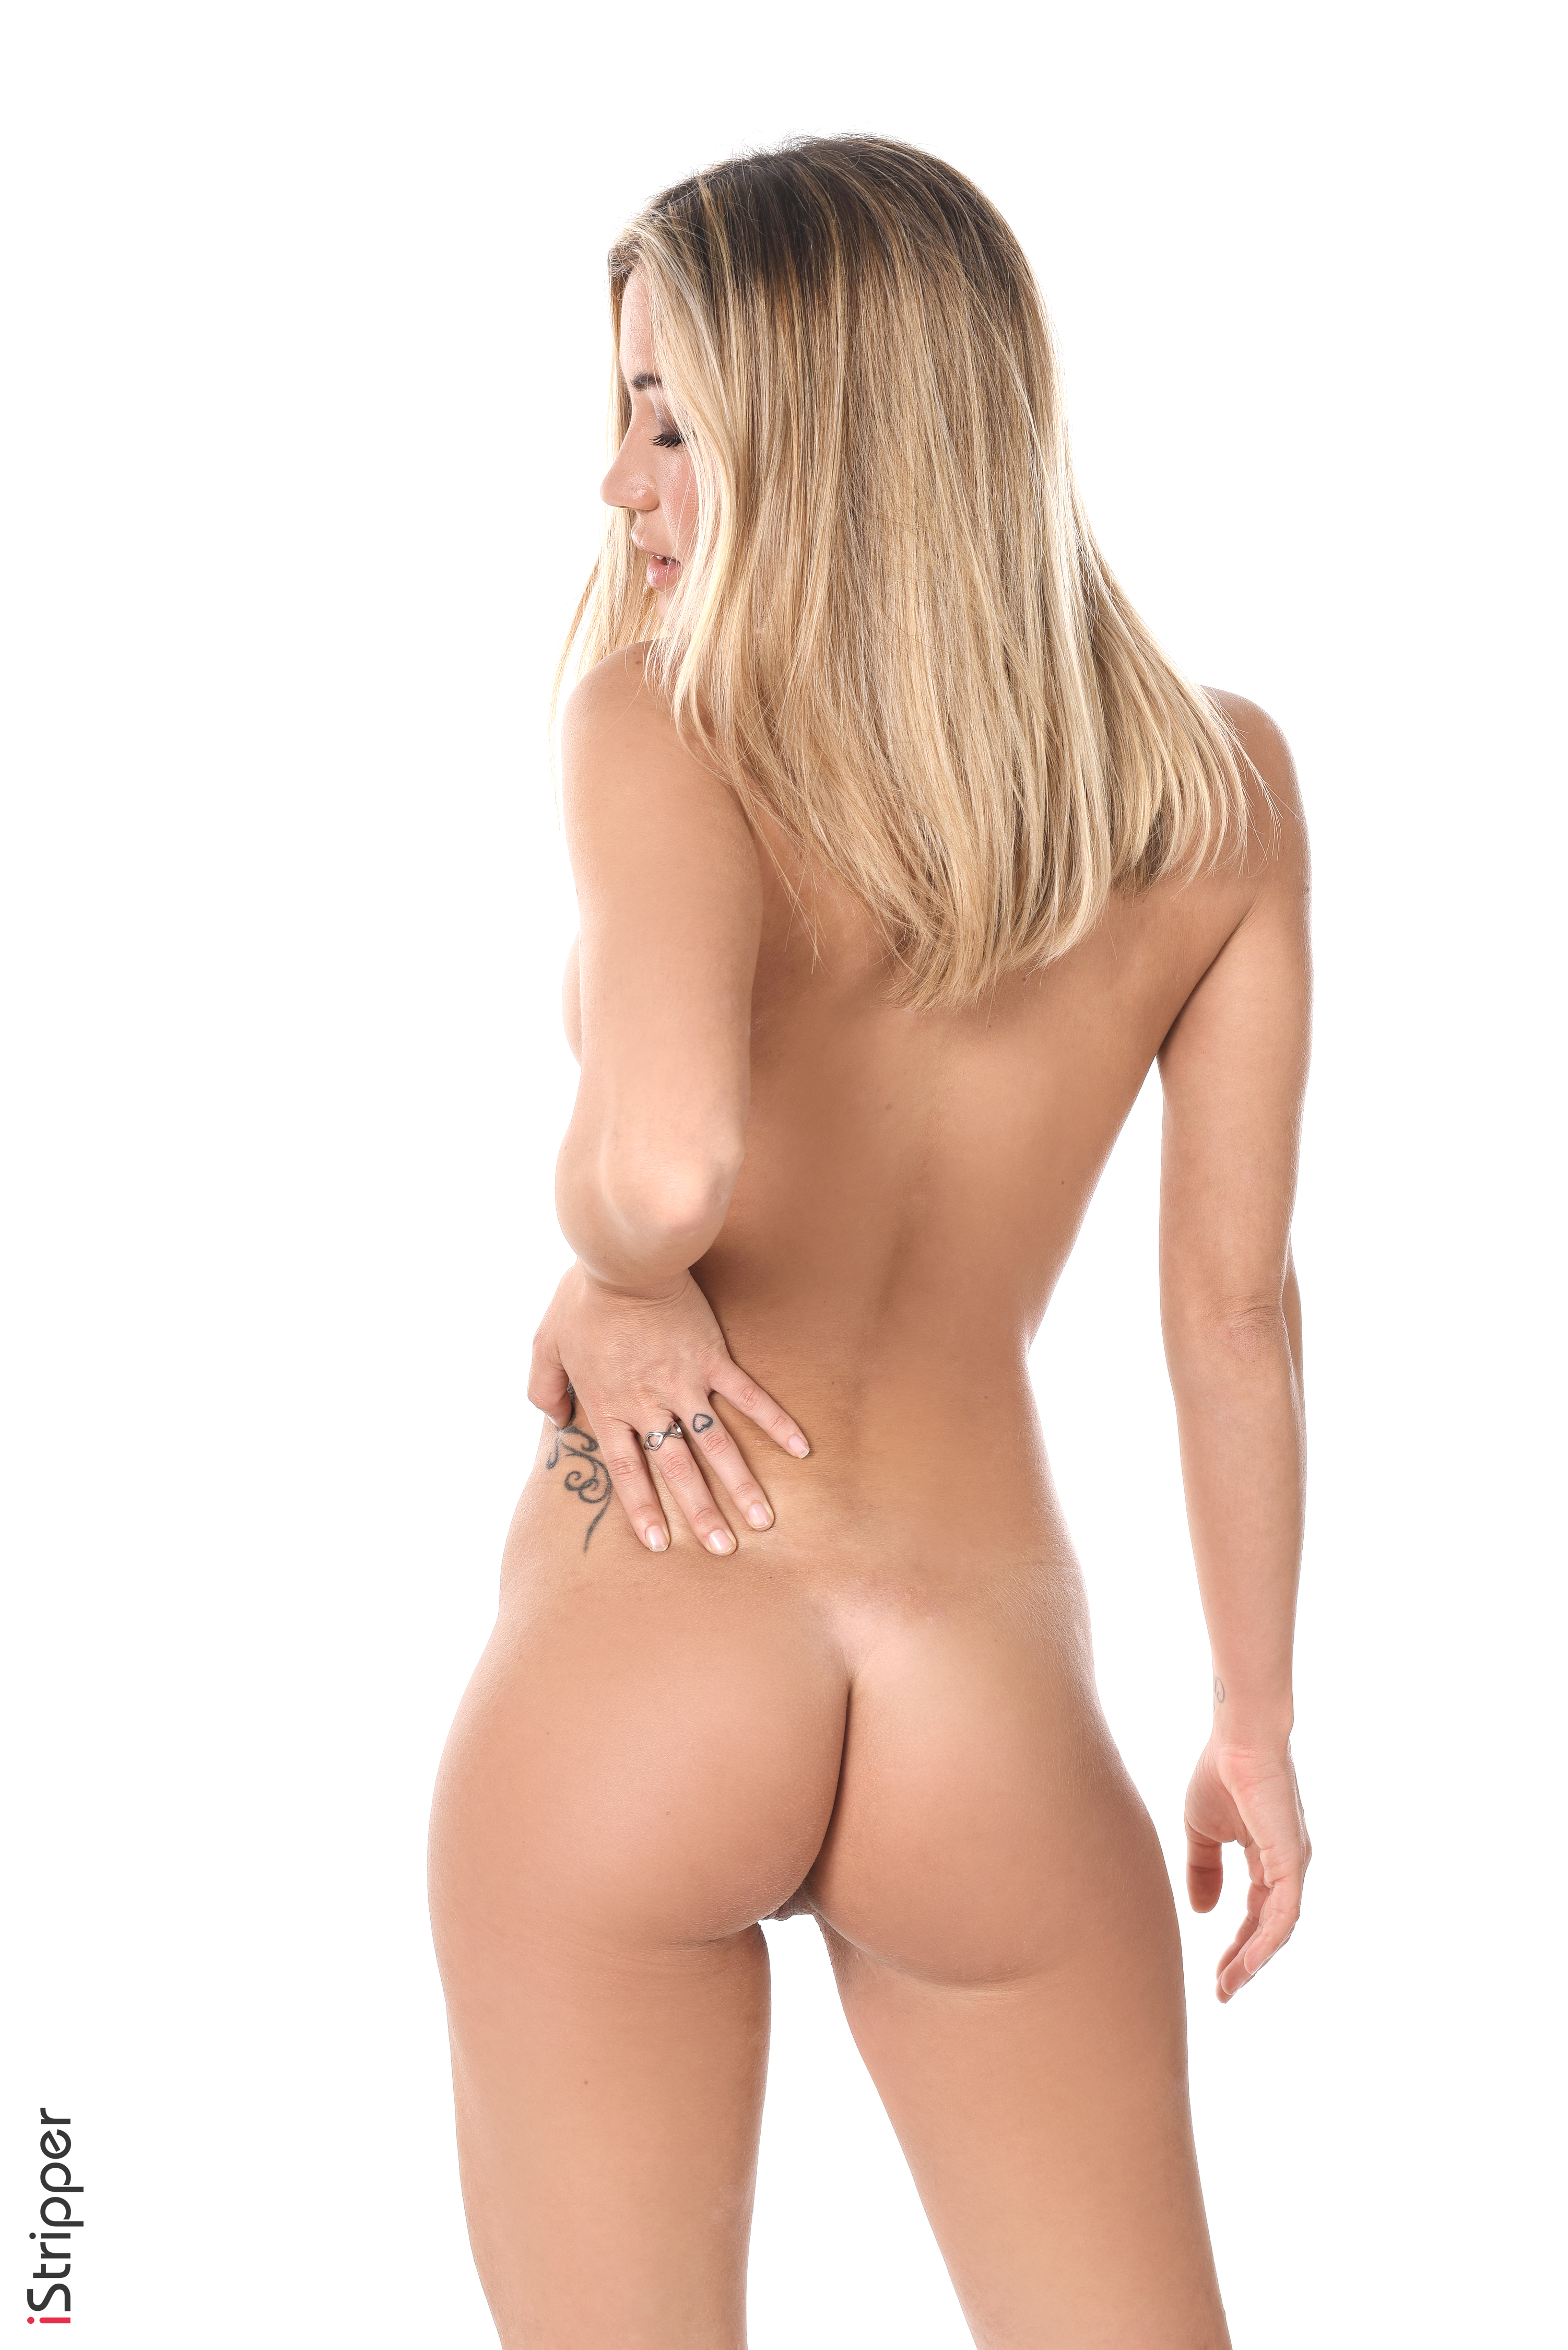 erotic sexy wallpapers